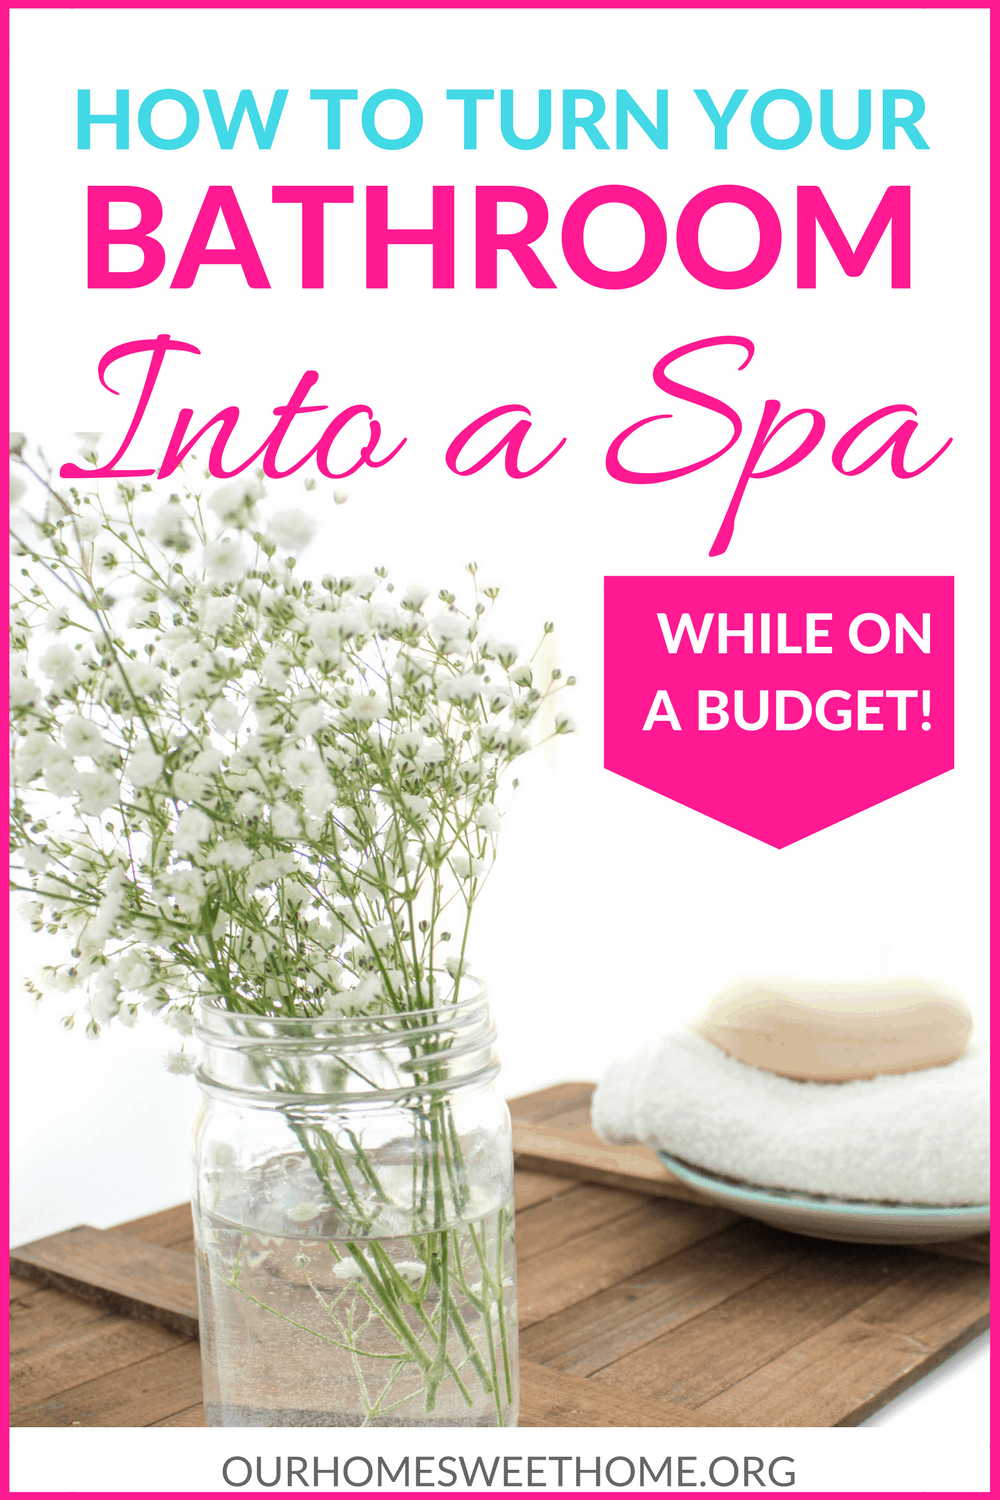 How to Turn Your Bathroom into a Spa -while on a budget!